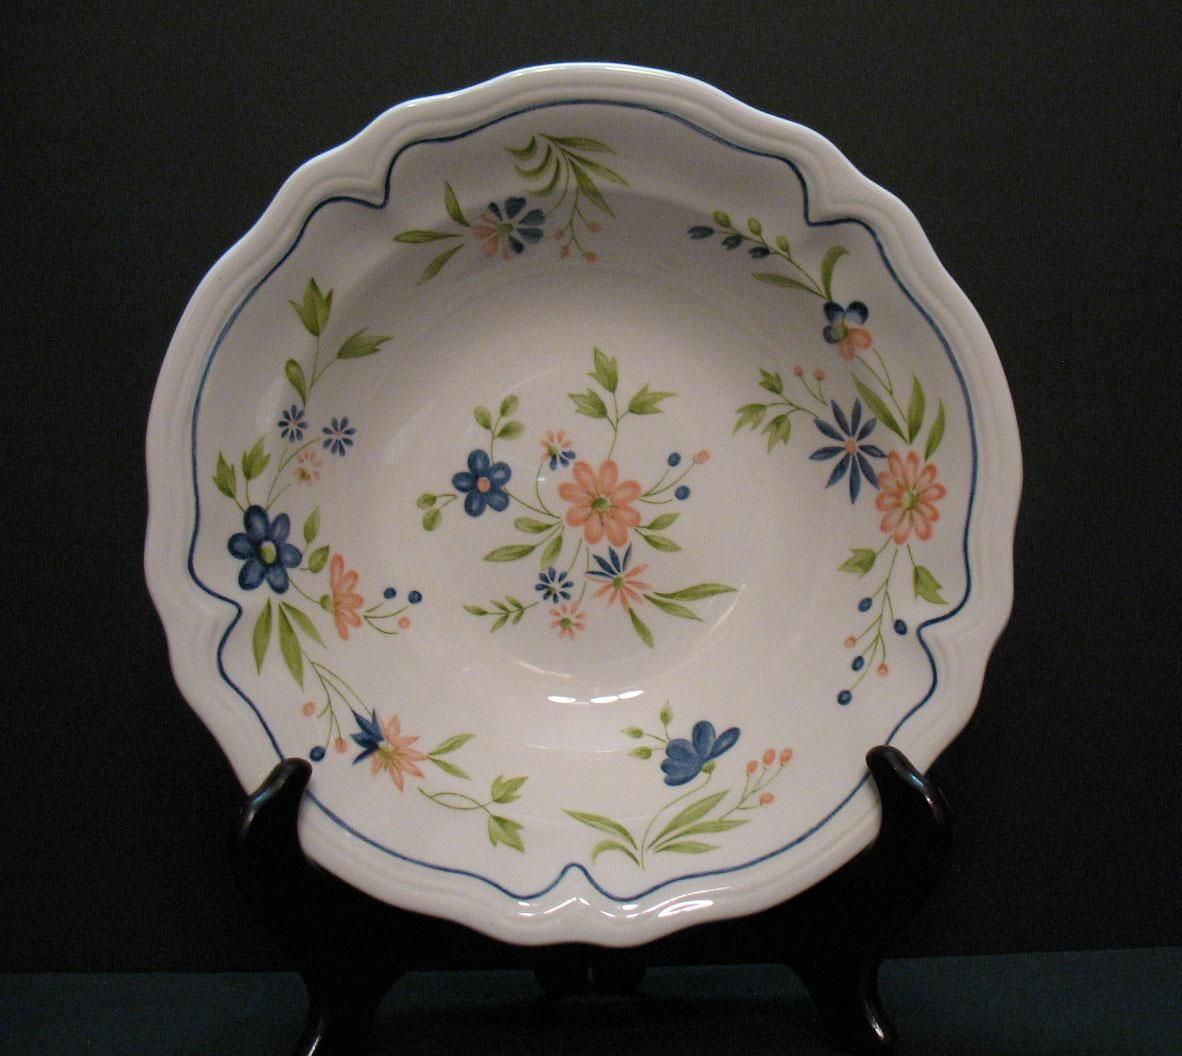 Two Vintage Federalist Ironstone Round Vegetable Bowls 1960-70s Floral Motif